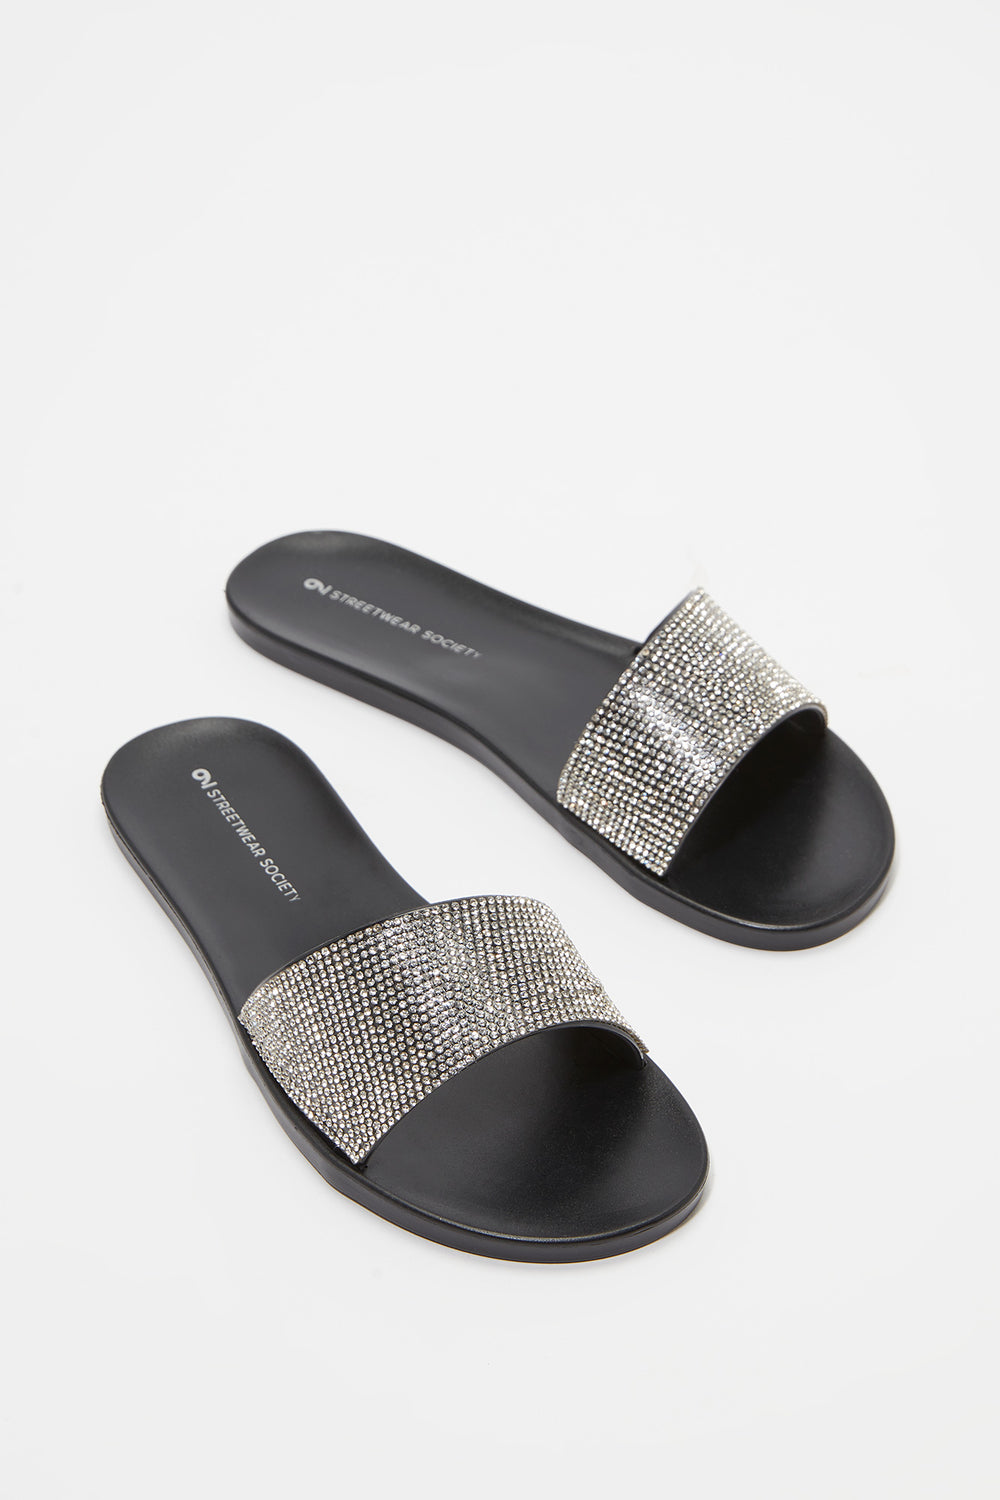 Rhinestone Band Comfort Slip-On Sandal Black